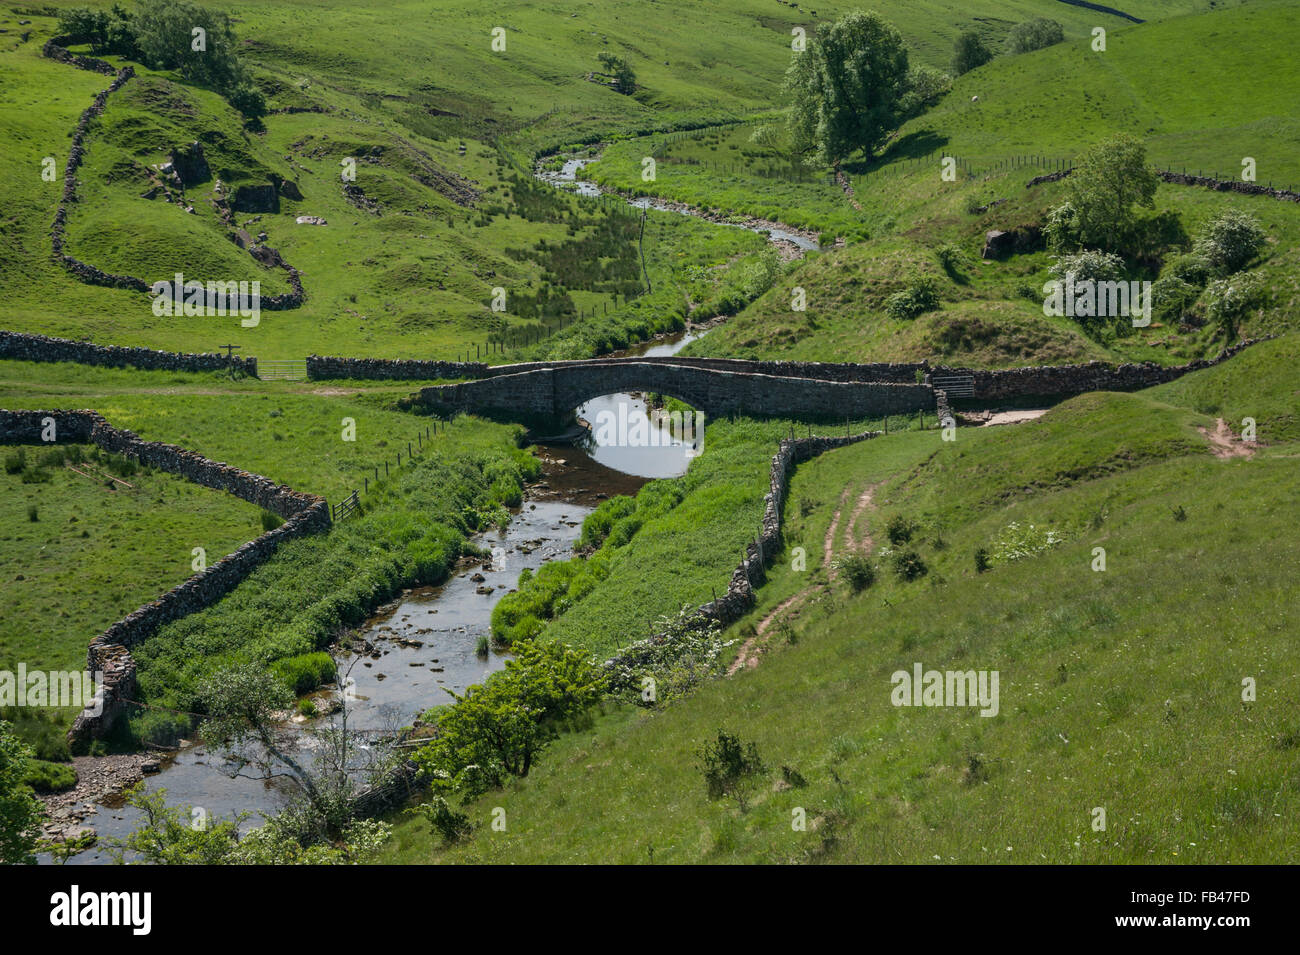 Smardale Bridge and Scandal Beck - Stock Image